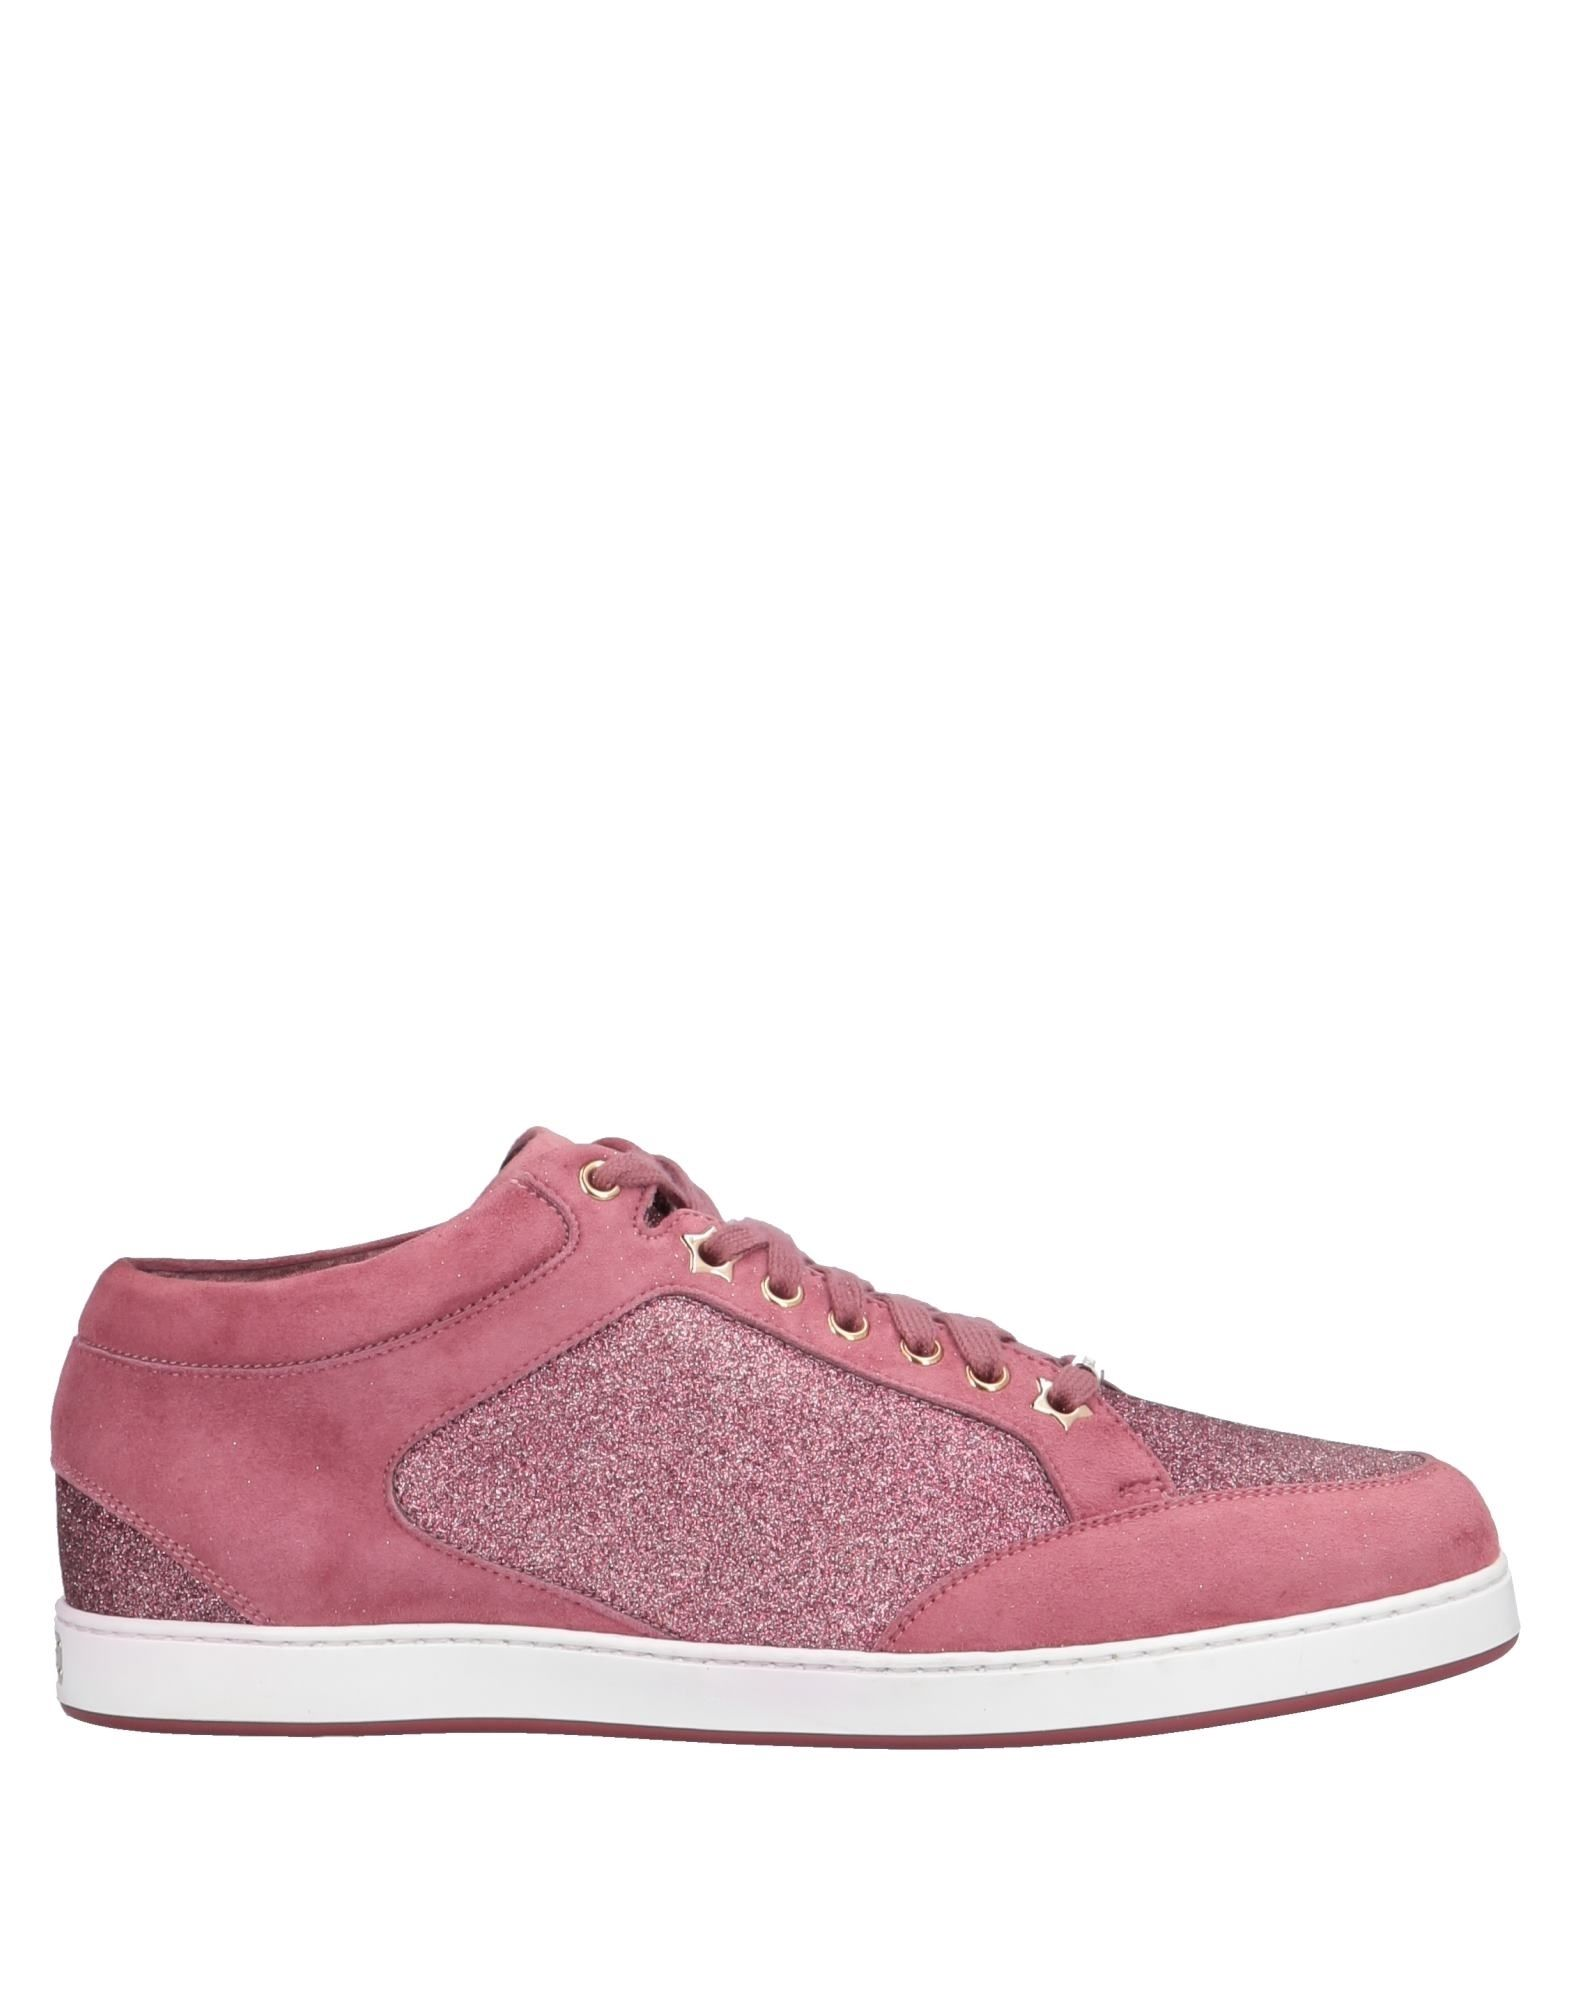 Jimmy Choo Sneakers - Women Jimmy Choo Sneakers - online on  Australia - Sneakers 11558352XQ c4d0d4